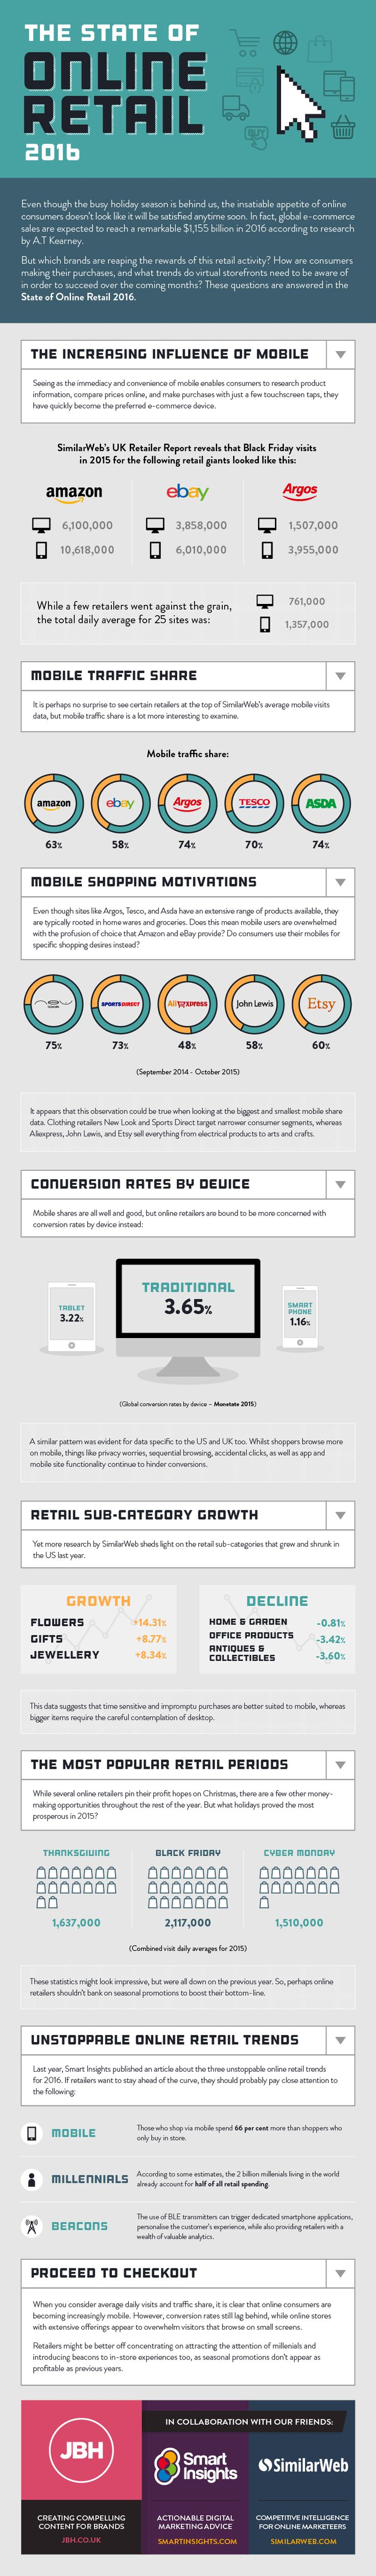 The State of Online Retail 2016 #Infographic